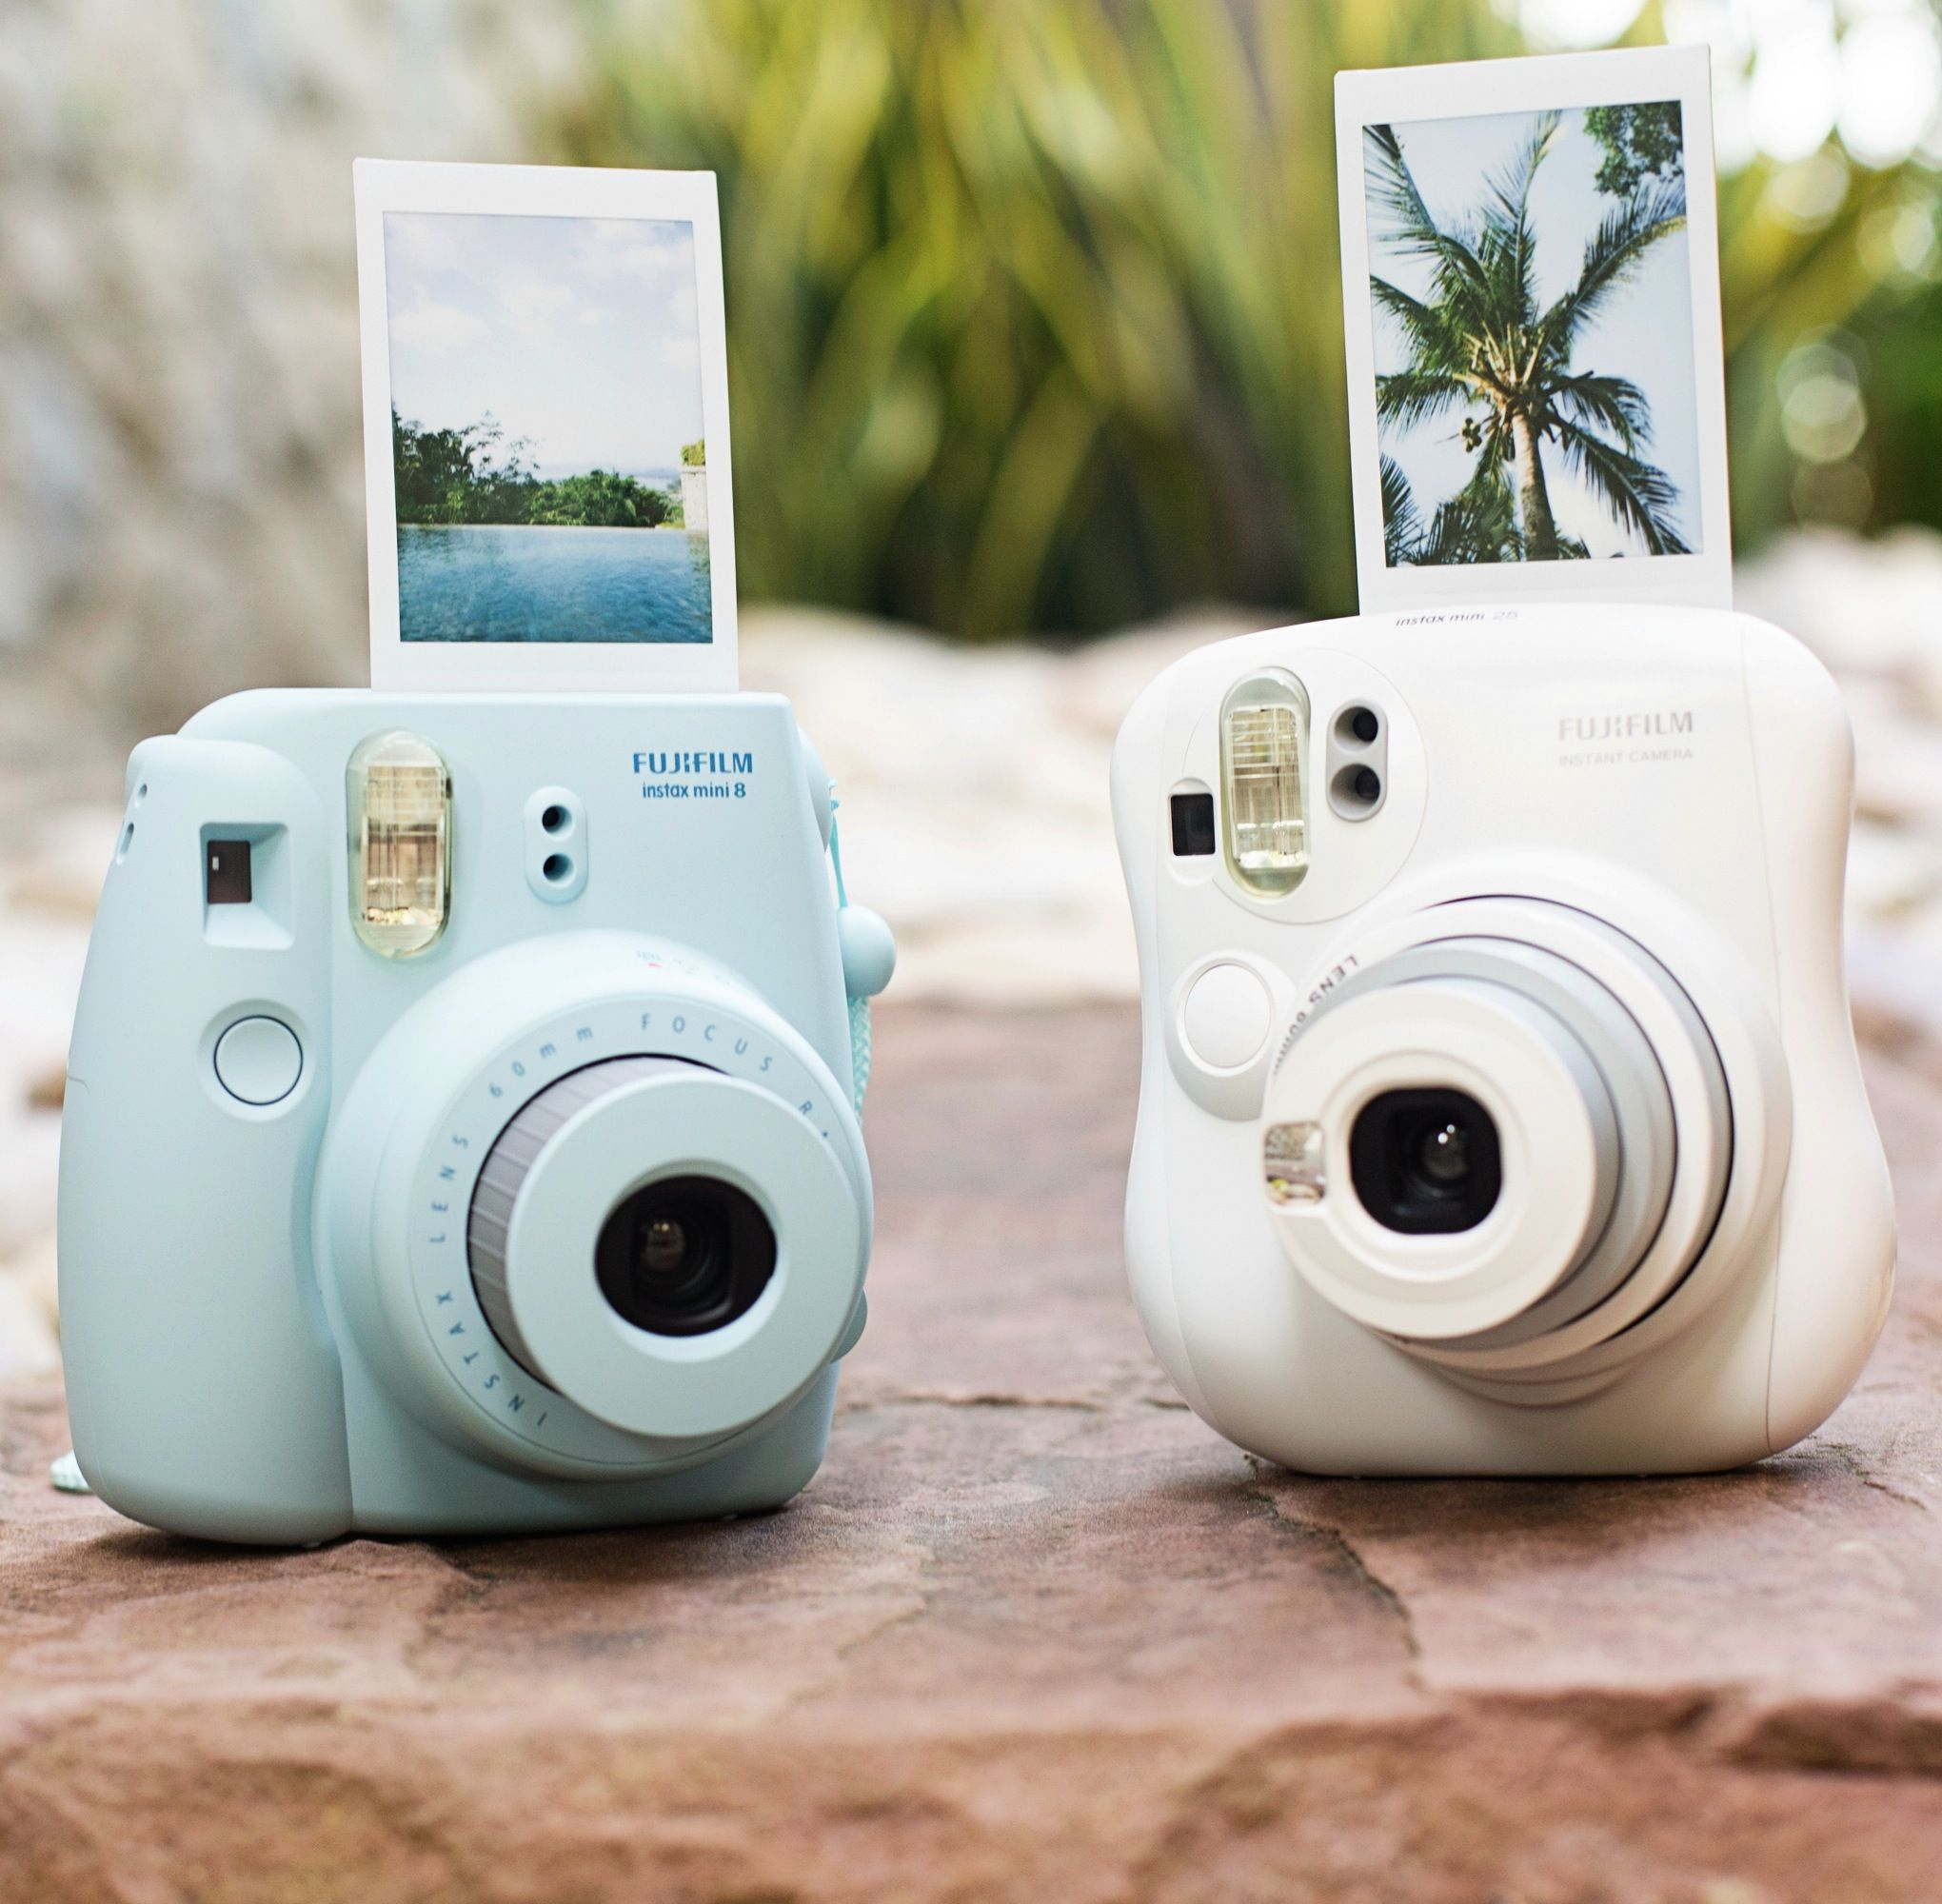 Instax Mini Instant Cameras - Make sharp, saturated, credit card-sized photos that develop instantly! The new (true blue) Mini 8 starts at $85